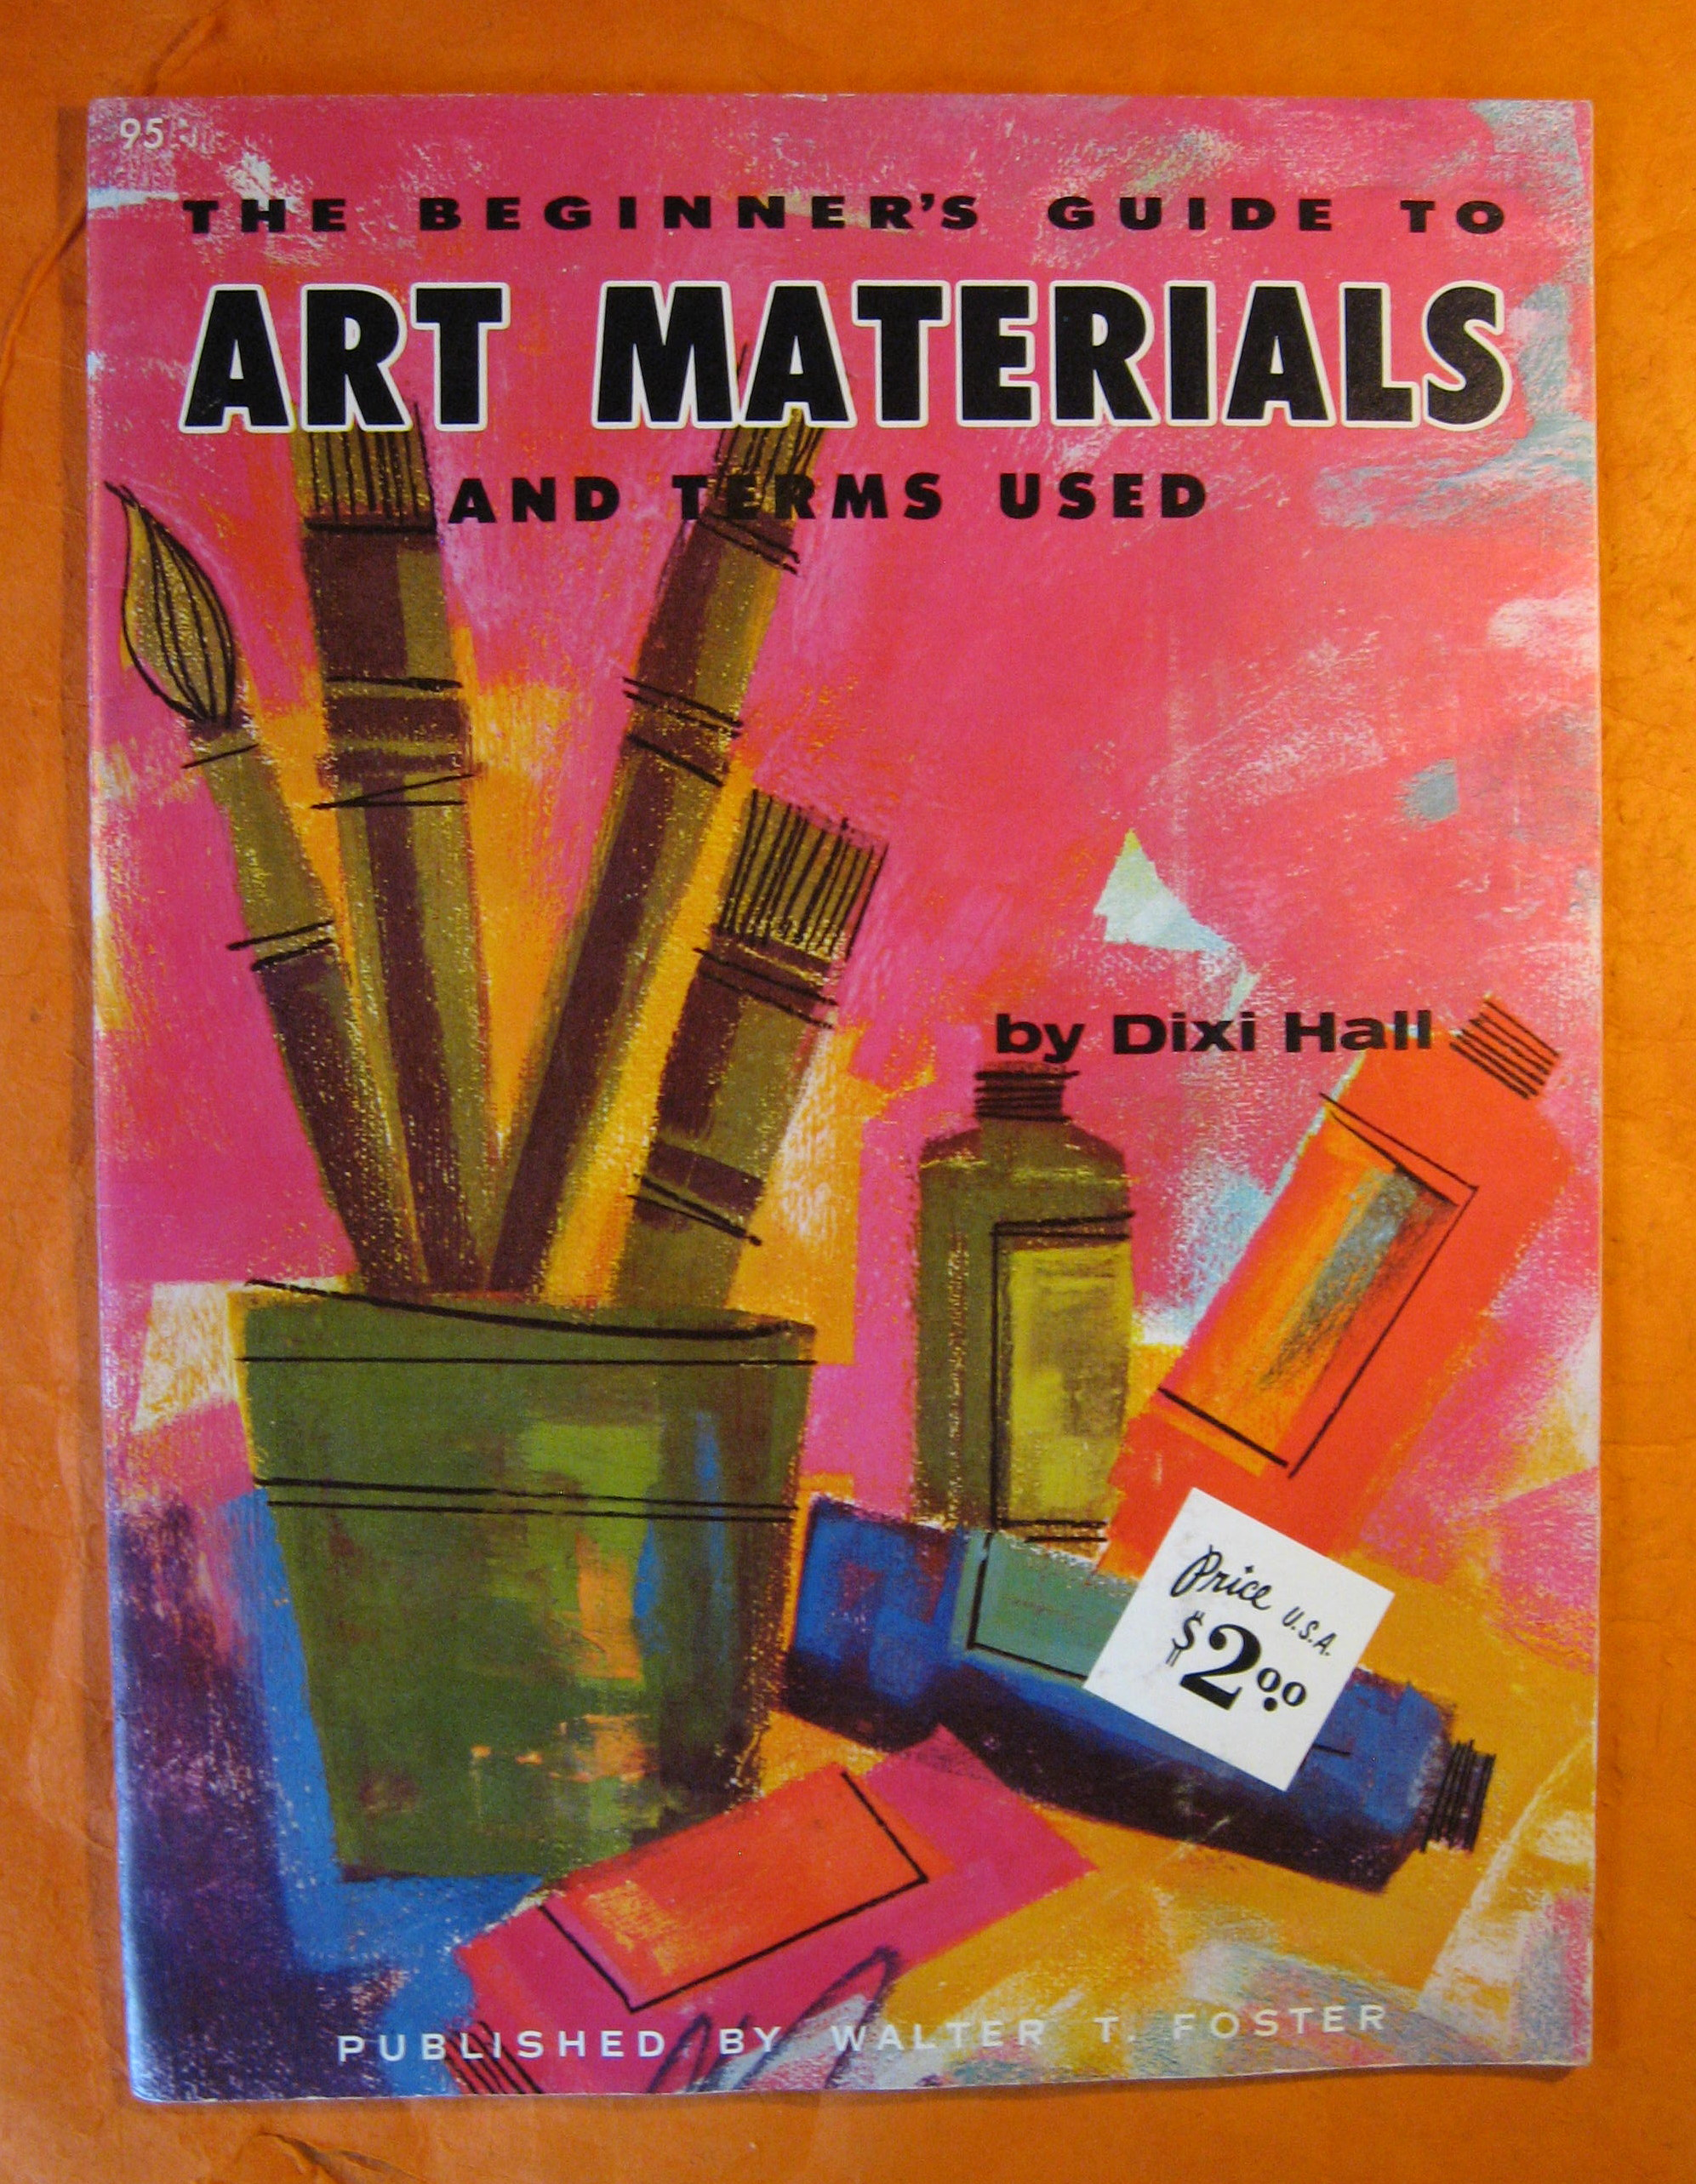 The Beginner's Guide to Art Materials and Terms Used